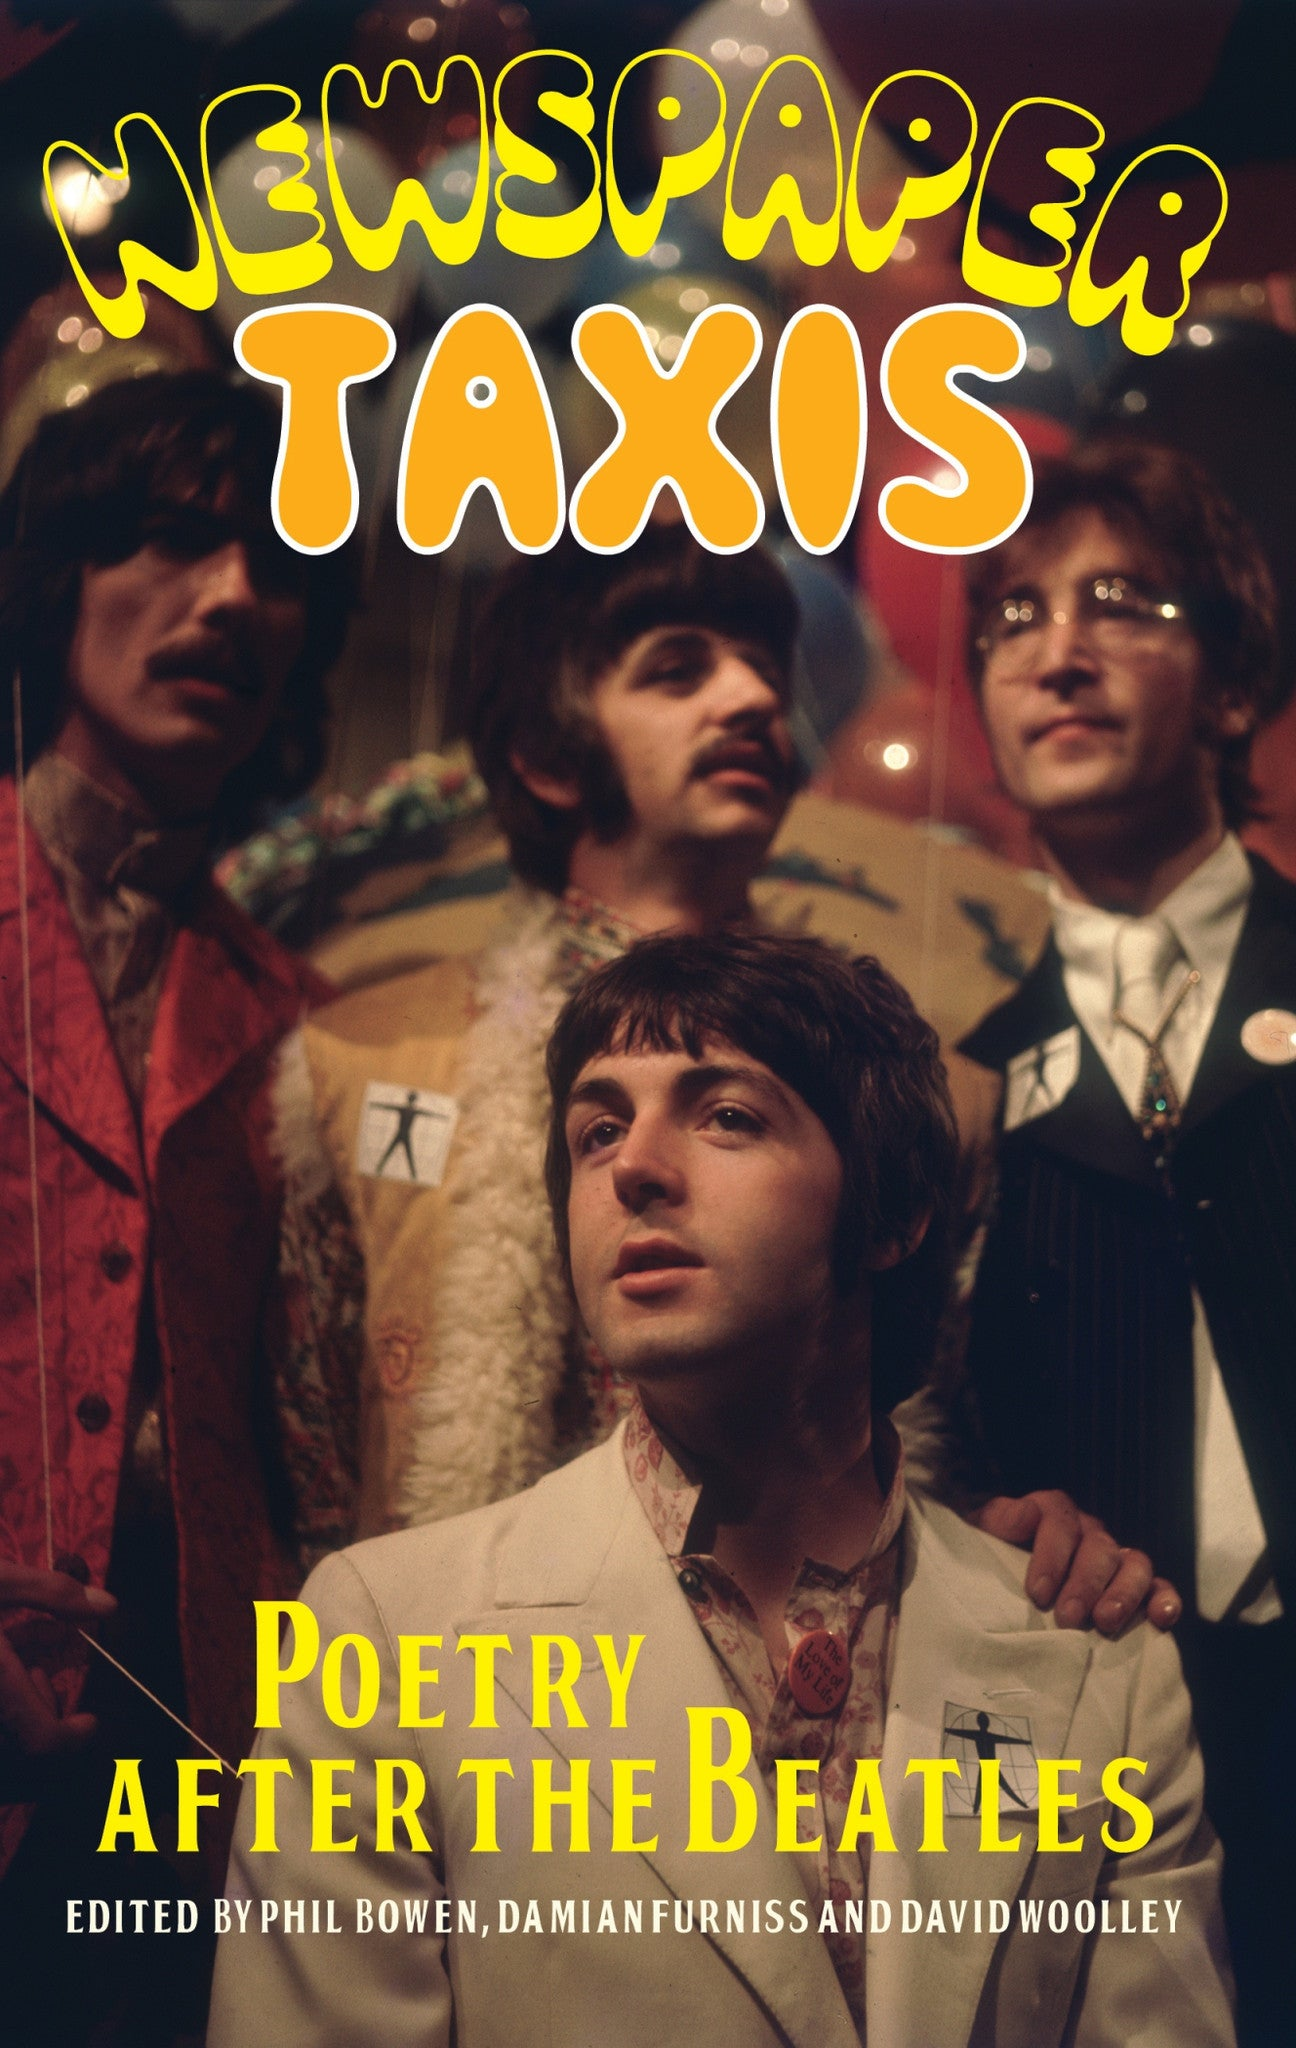 Newspaper Taxis: Poetry After The Beatles